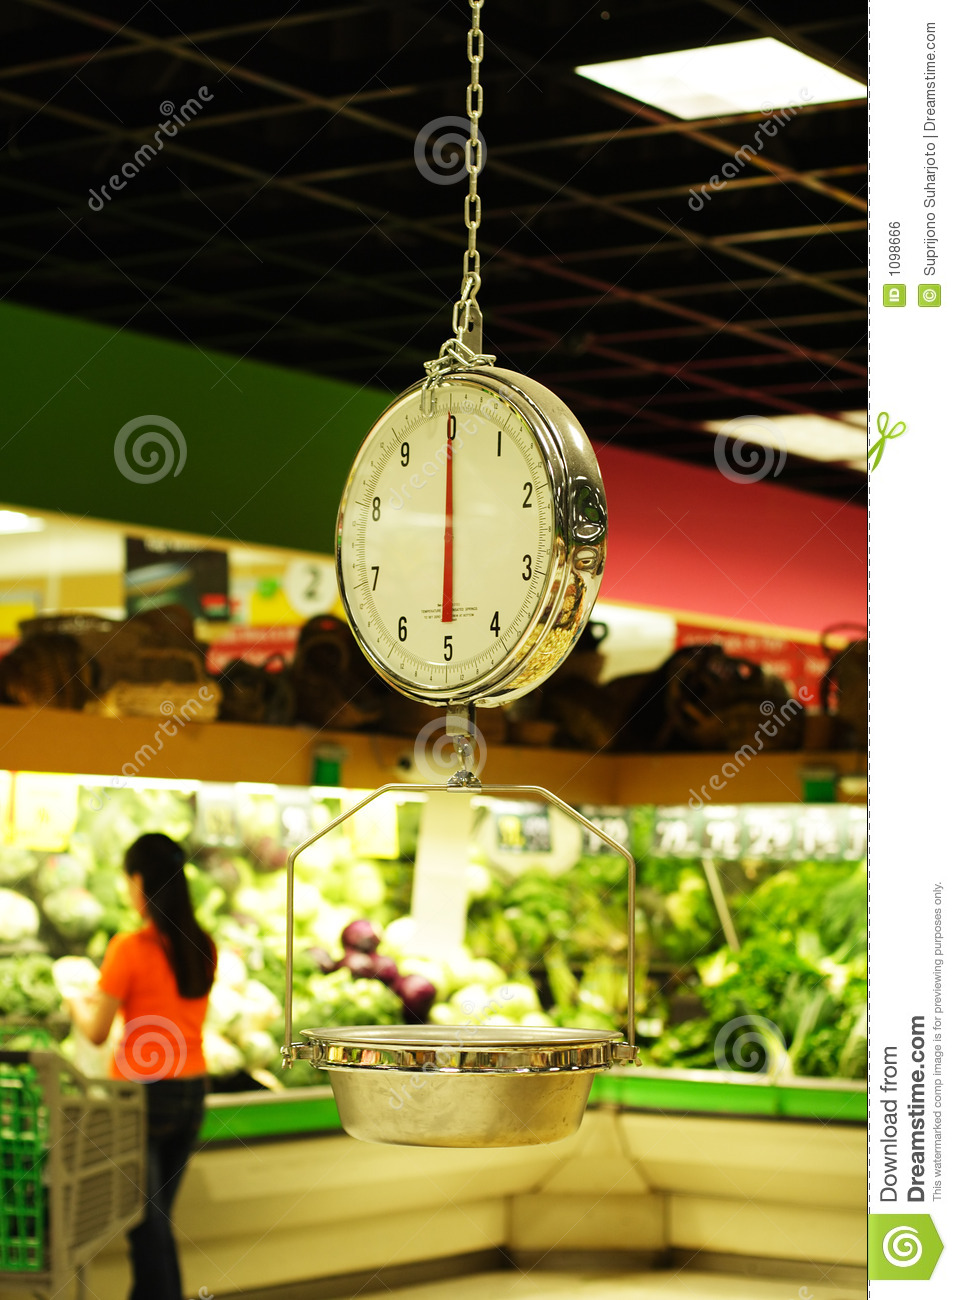 Grocery Weight Scale Stock Photo Image Of Weigh Market